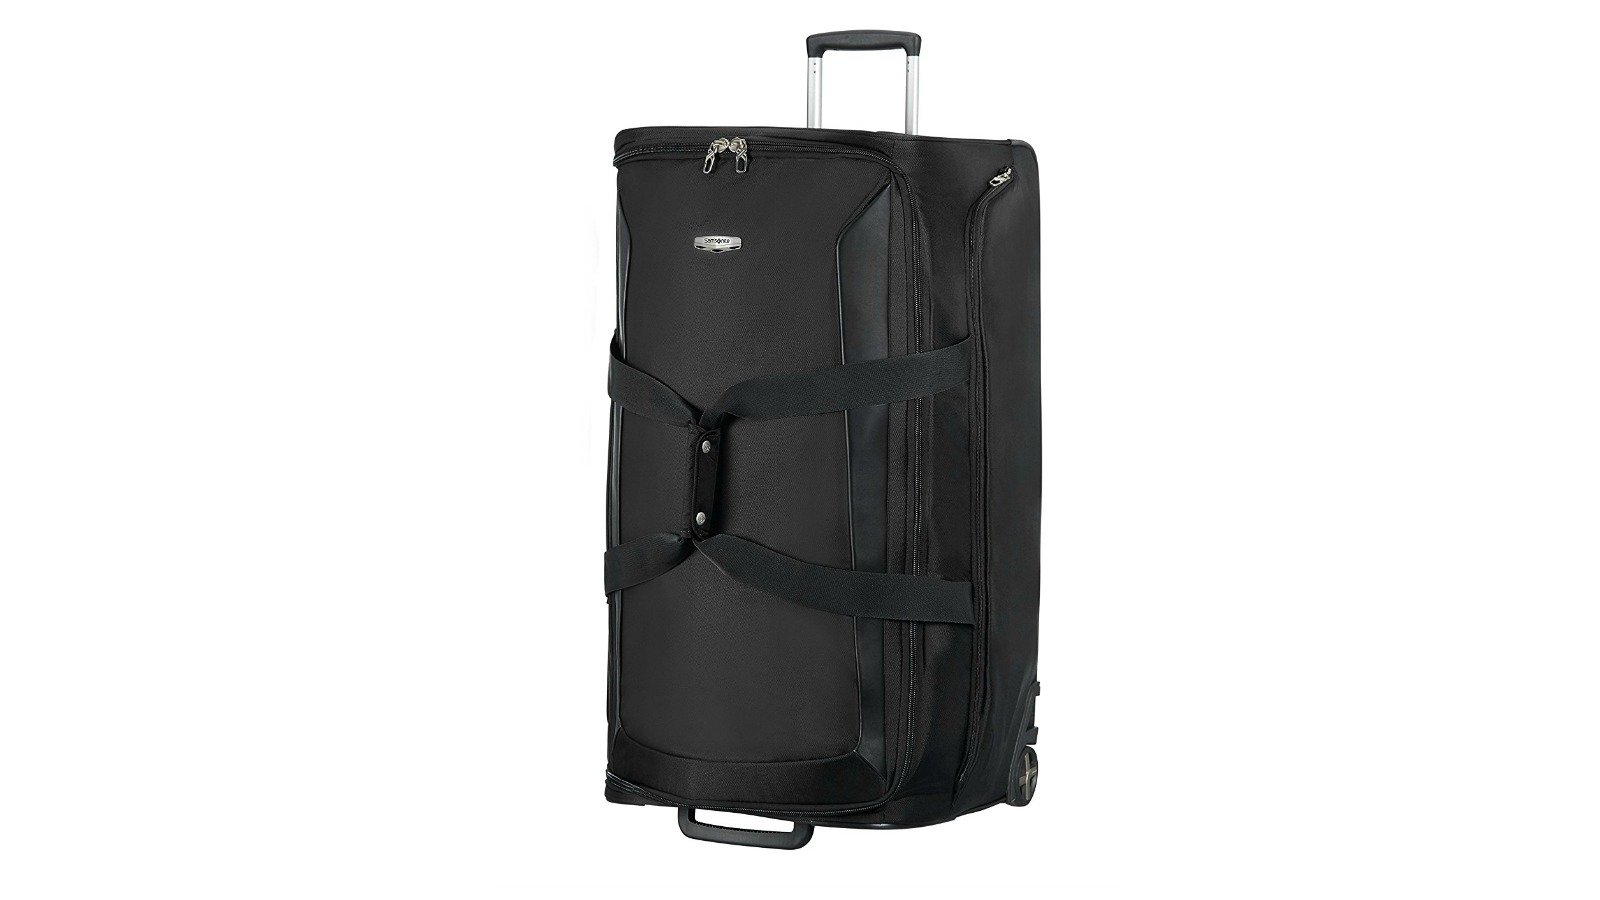 a18dc9da698 Samsonite s all-in-one travel duffle is smart enough for business trips but  big enough for long-term travellers. It s versatile